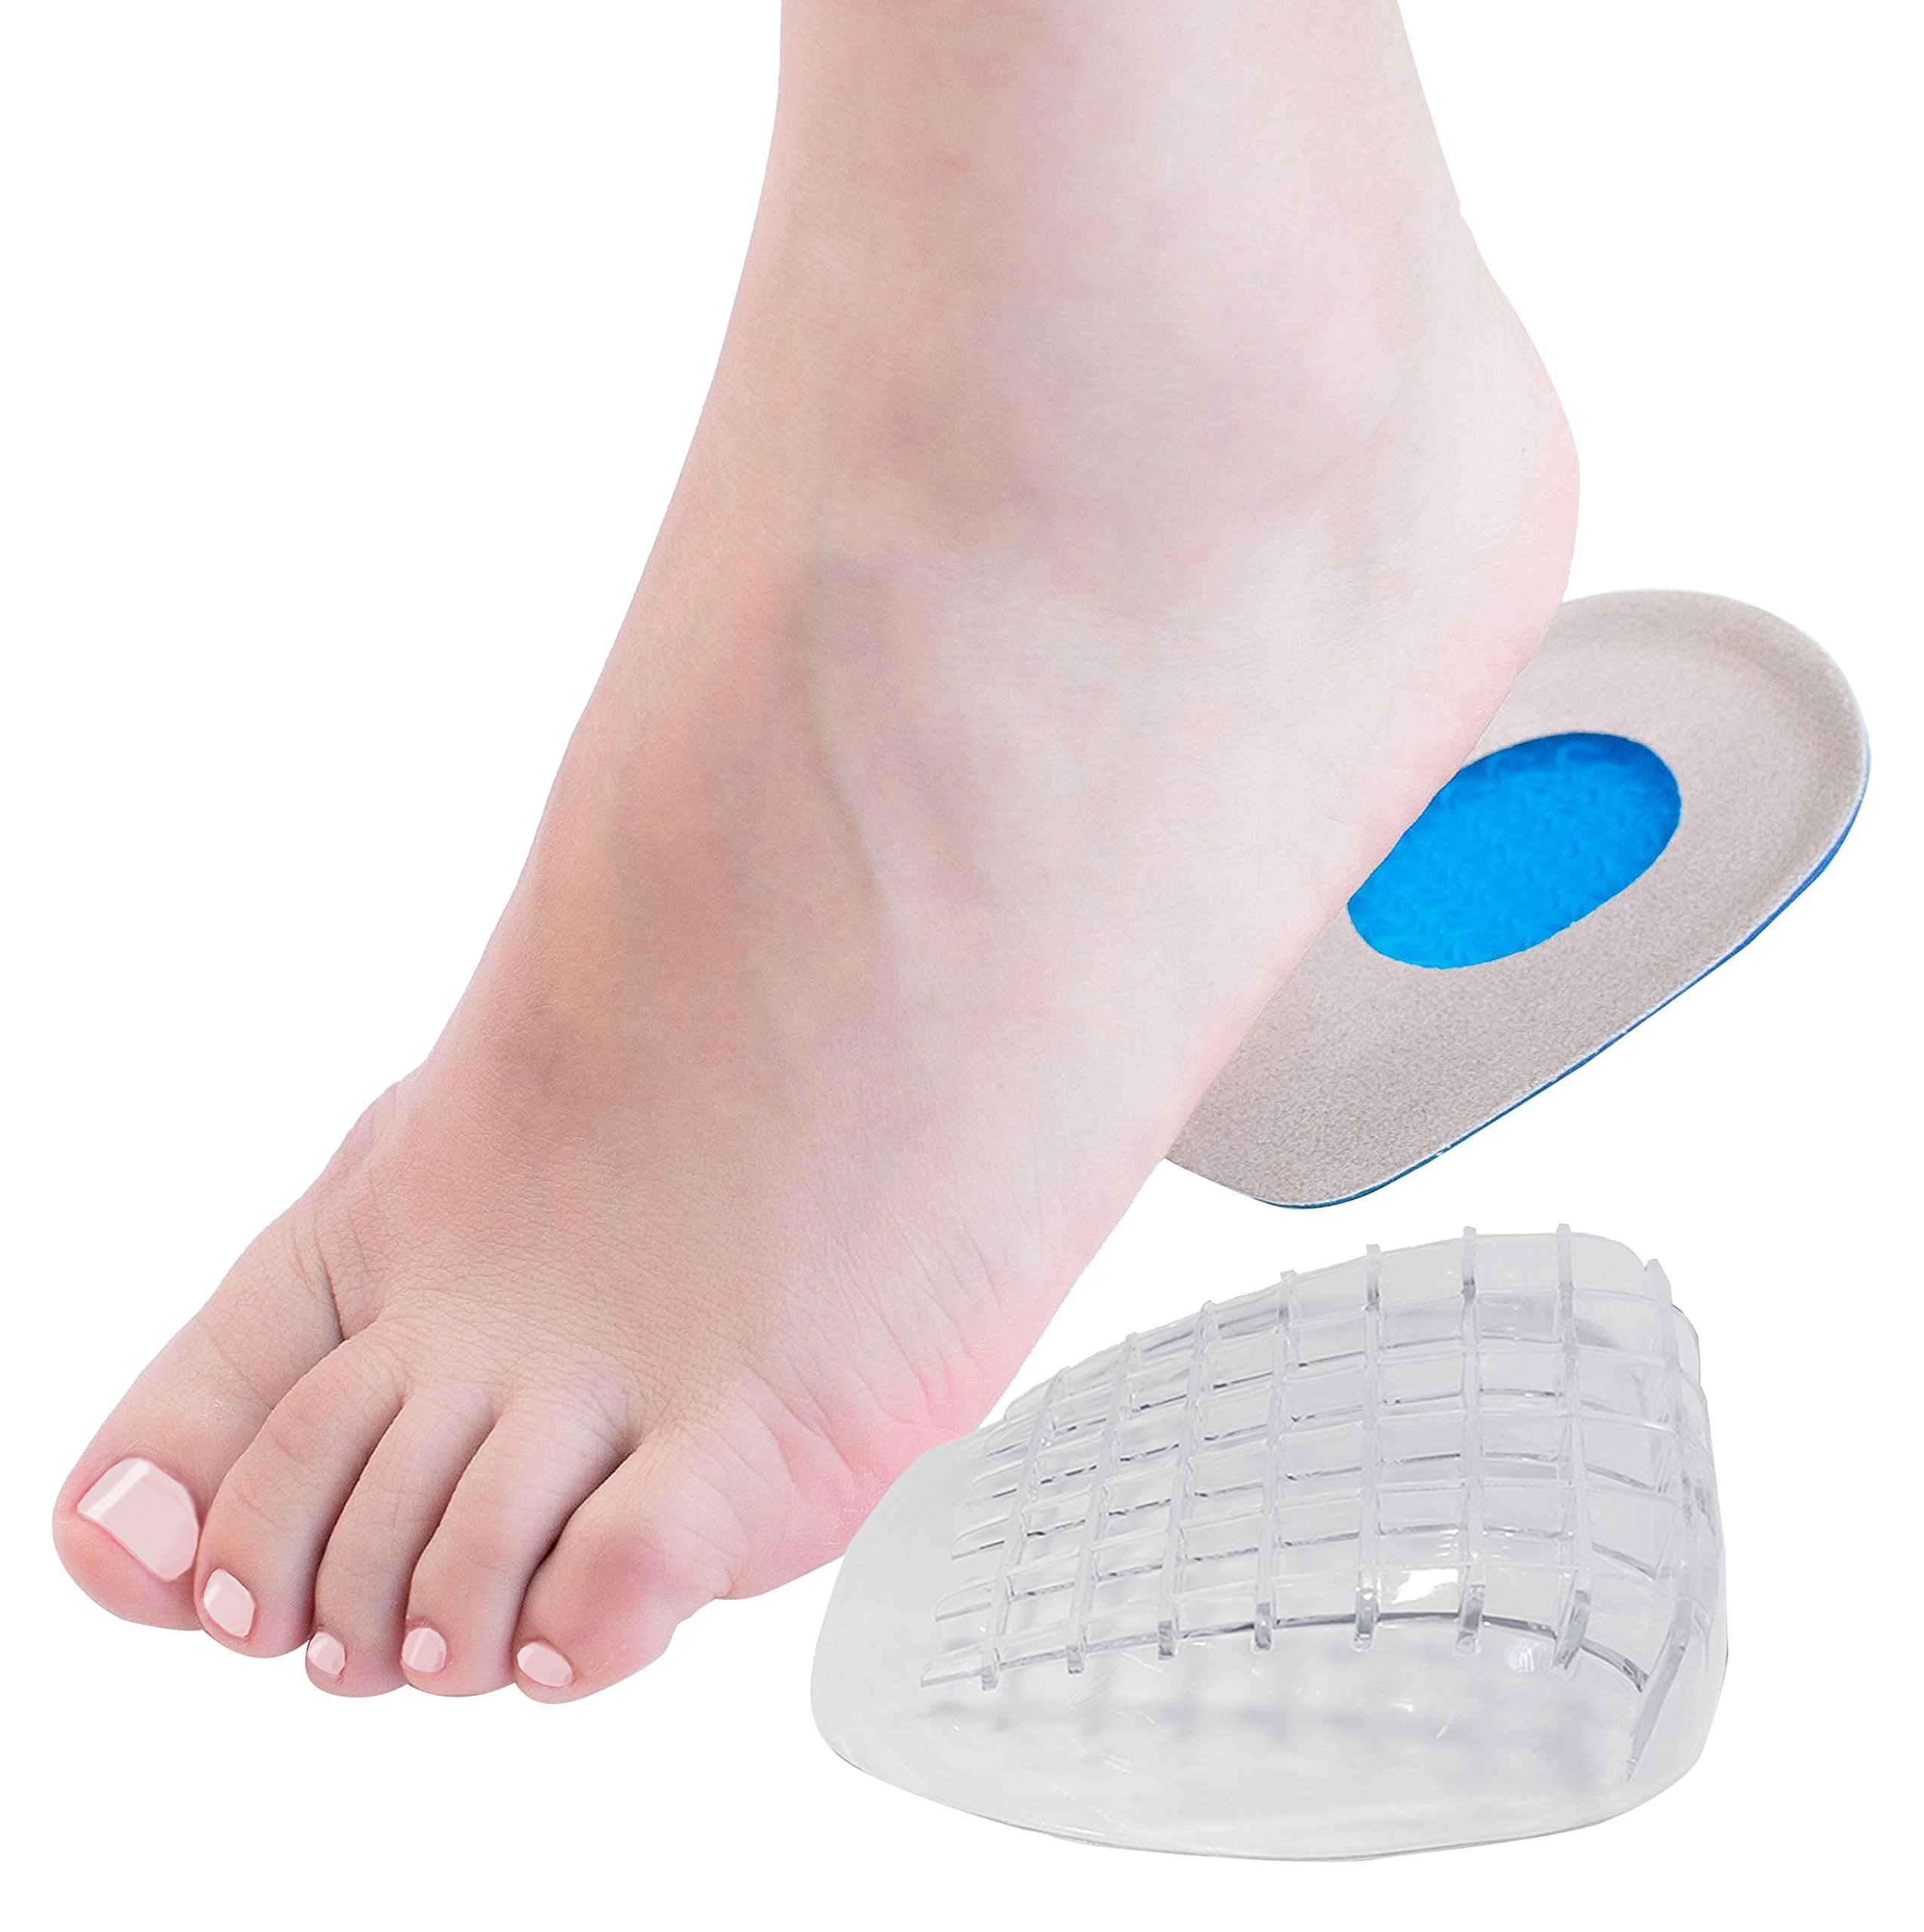 Reasonable Footful Heel Support Pad Gel Silicone Cushion Shock Orthotic Insole Female Novelty & Special Use